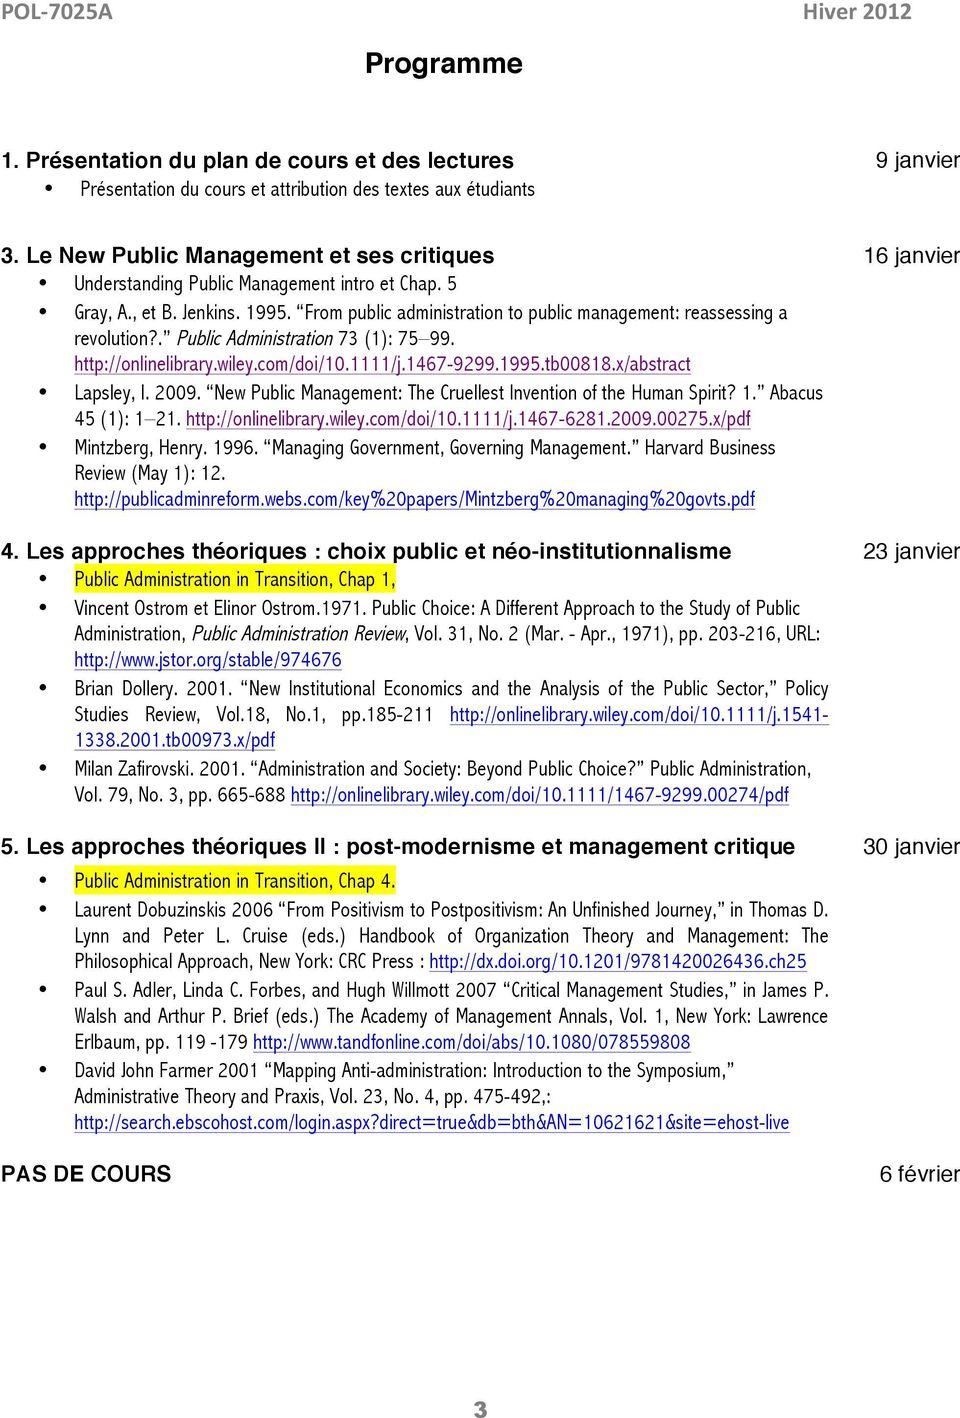 From public administration to public management: reassessing a revolution?. Public Administration 73 (1): 75 99. http://onlinelibrary.wiley.com/doi/10.1111/j.1467-9299.1995.tb00818.